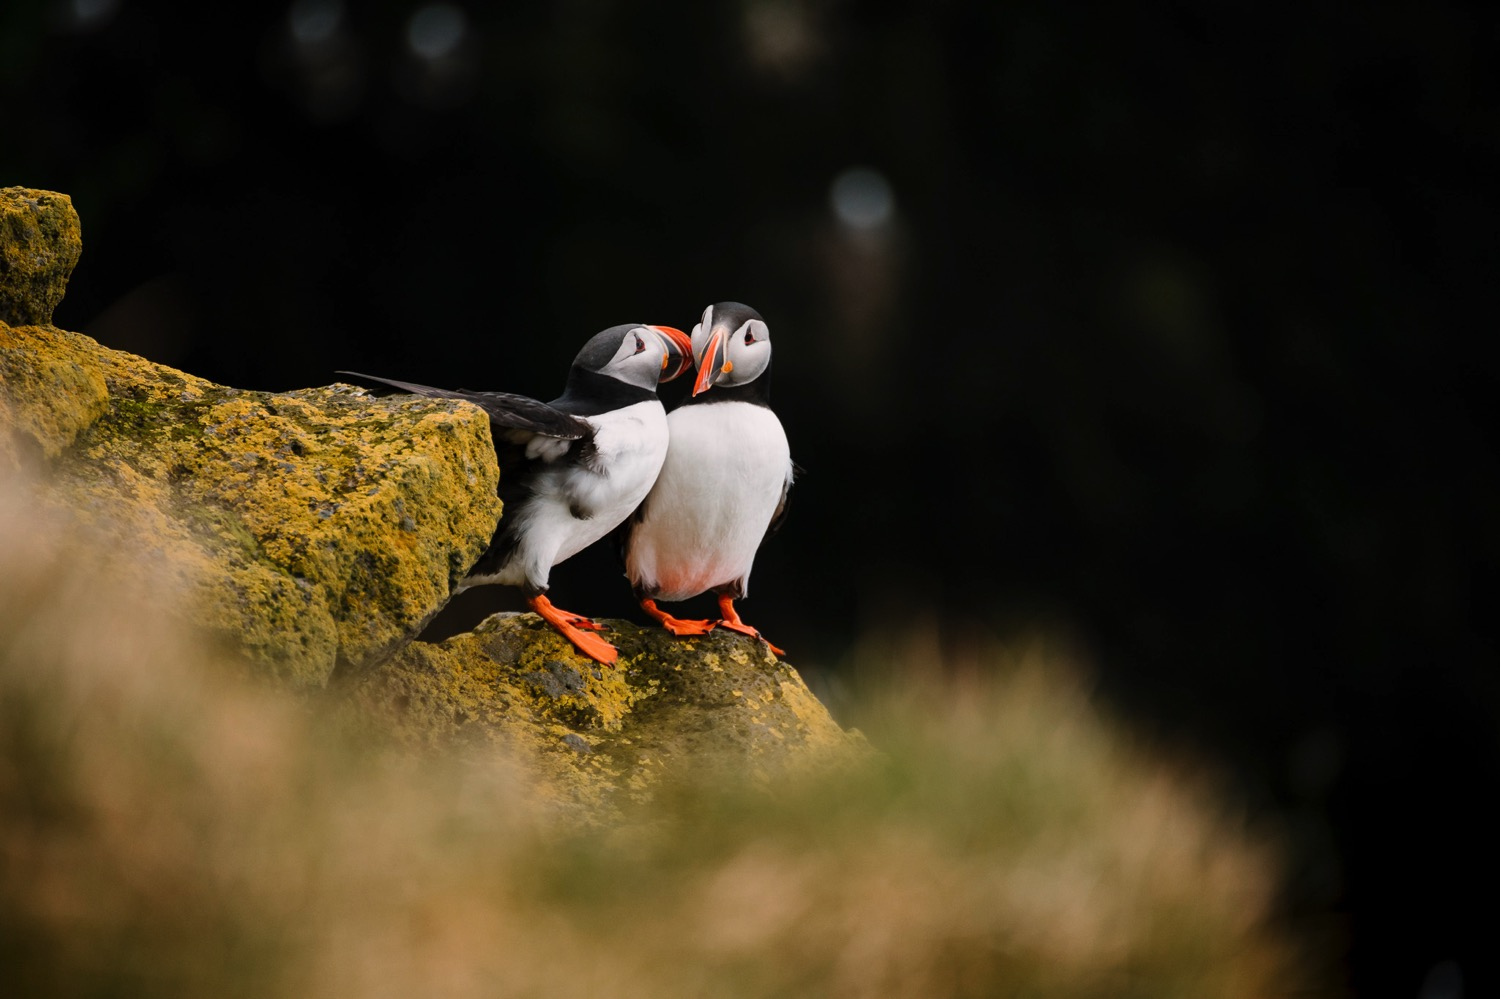 Cuddling Puffins - Iceland Blog Part IIPhoto by Trung Hoang Photography |www.trunghoangphotography.com | San Francisco Bay Area Wedding Photographer